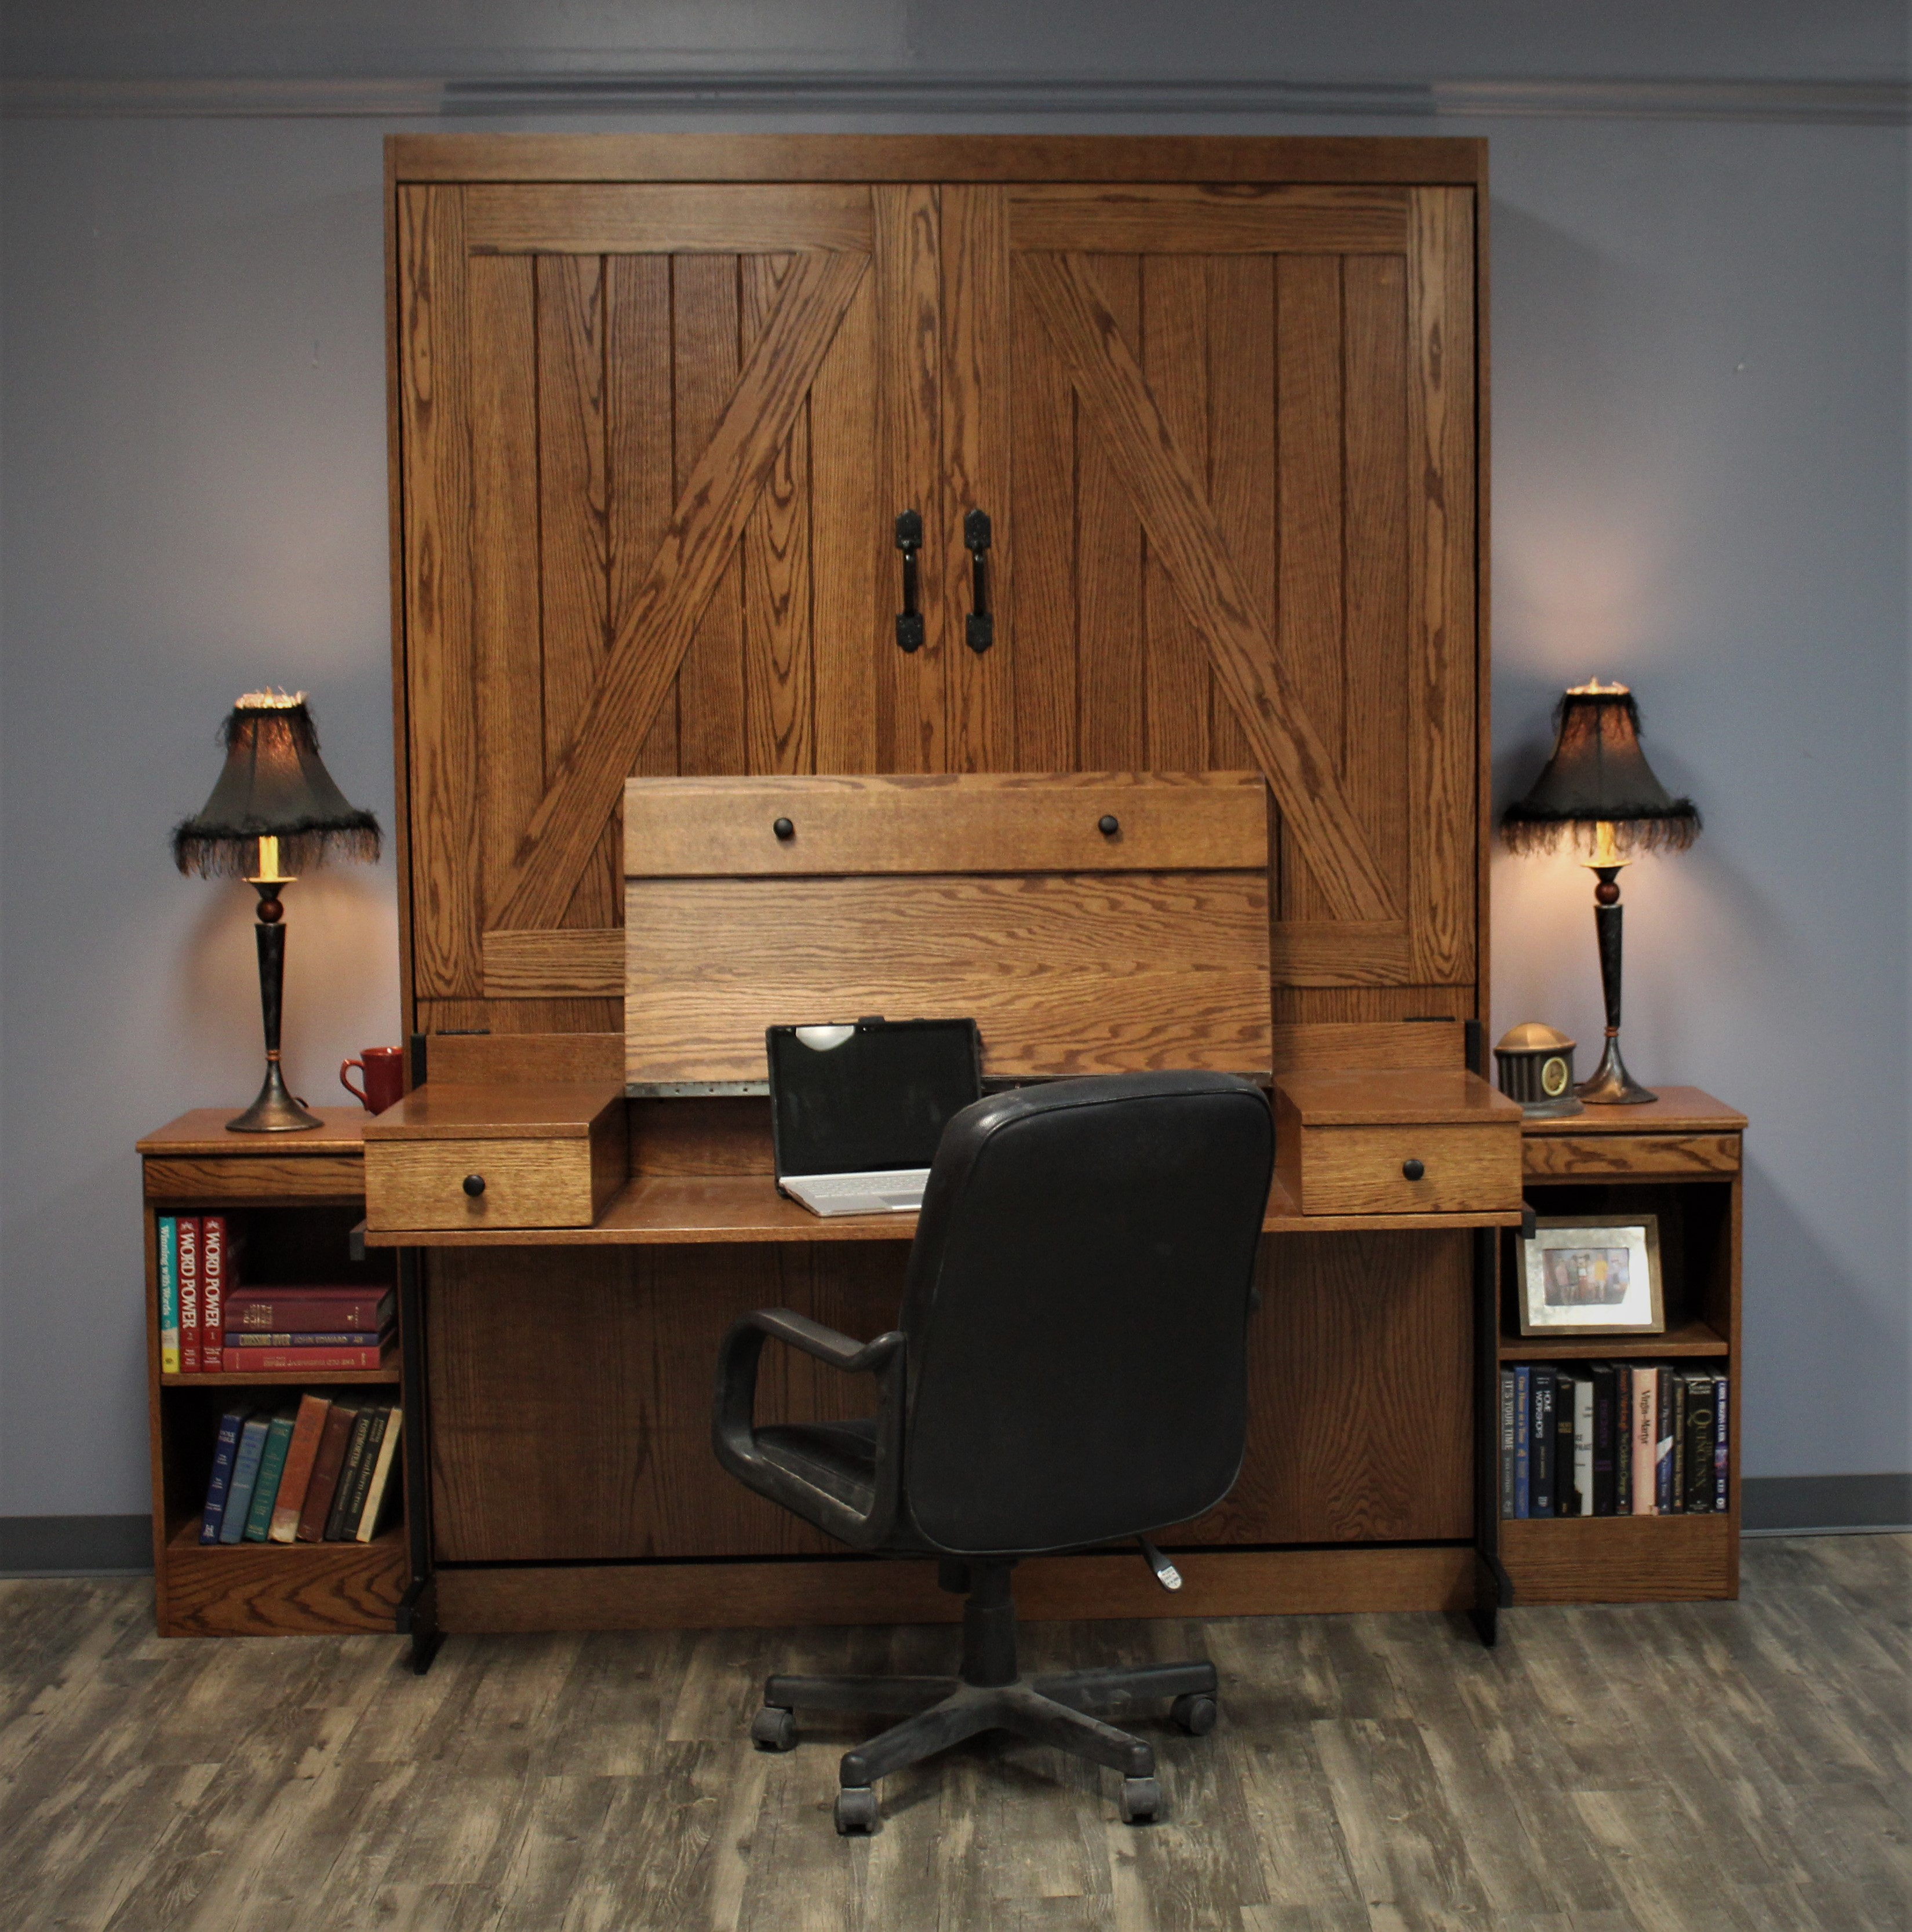 Barn Door #1219--0120 Desk Open